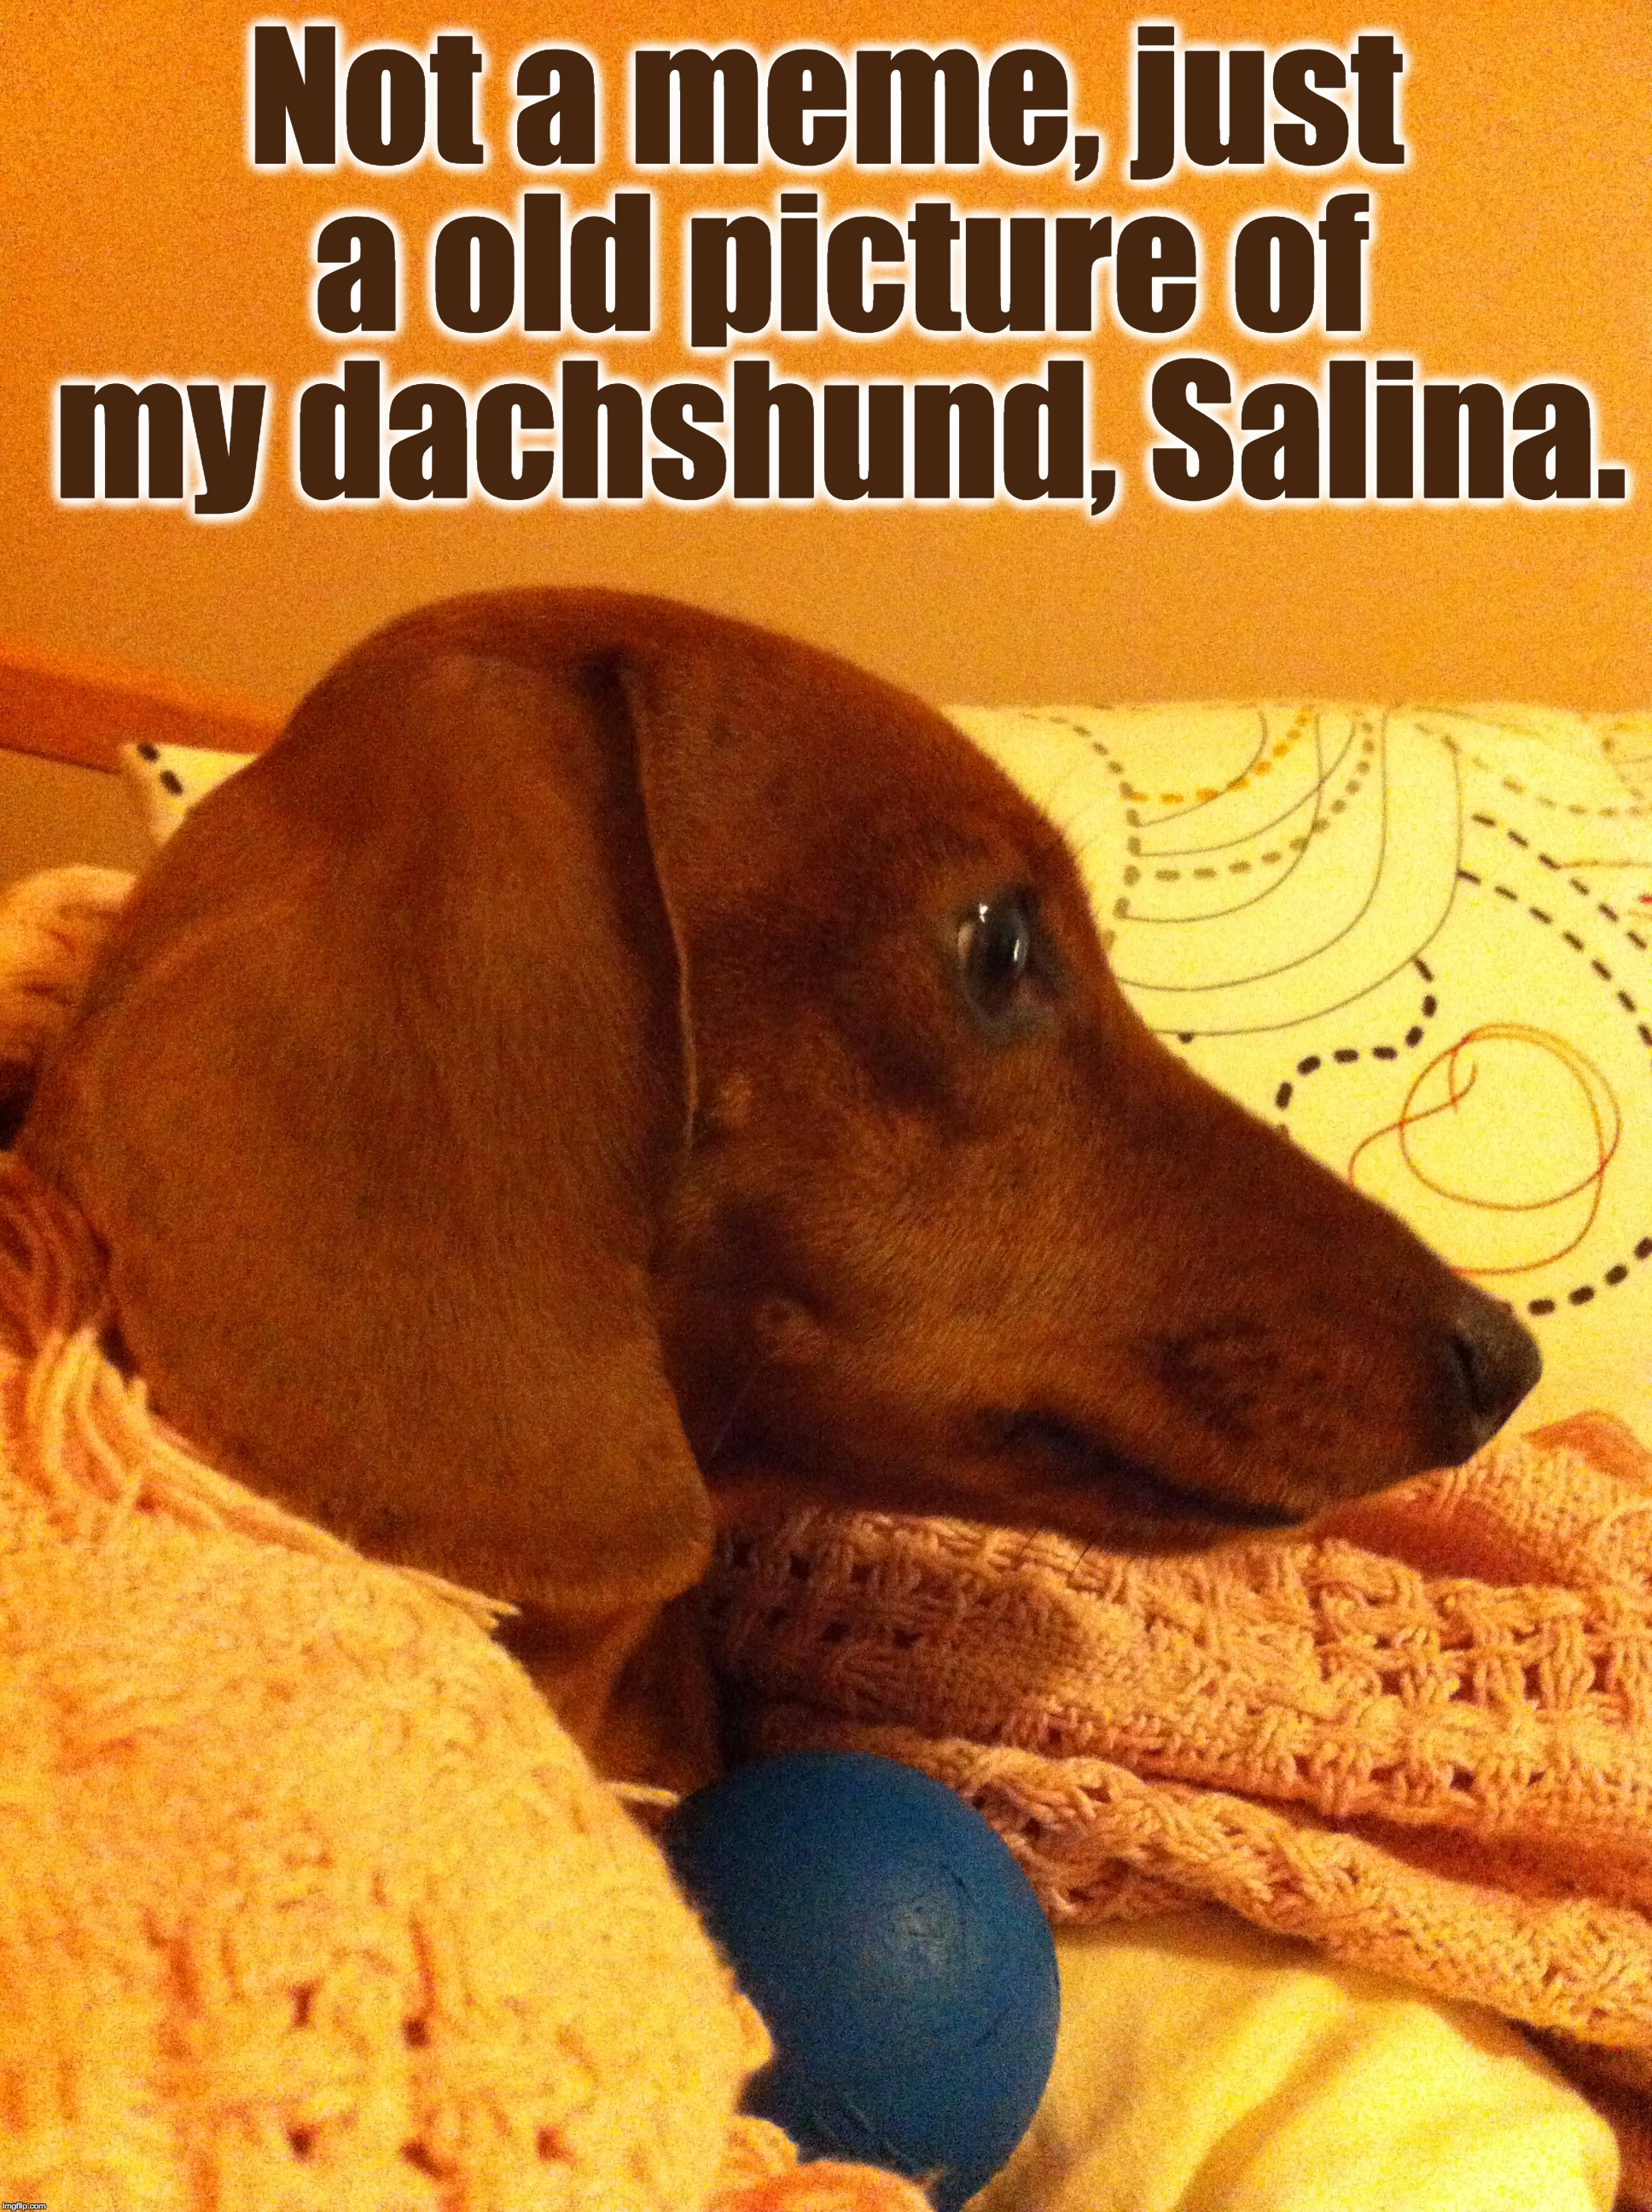 With Her Favorite Blue Ball [Picture Taken On January 7, 2013]. | Not a meme, just a old picture of my dachshund, Salina. | image tagged in memes,dachshund week,funny,salina,juicydeath1025,dachshund | made w/ Imgflip meme maker